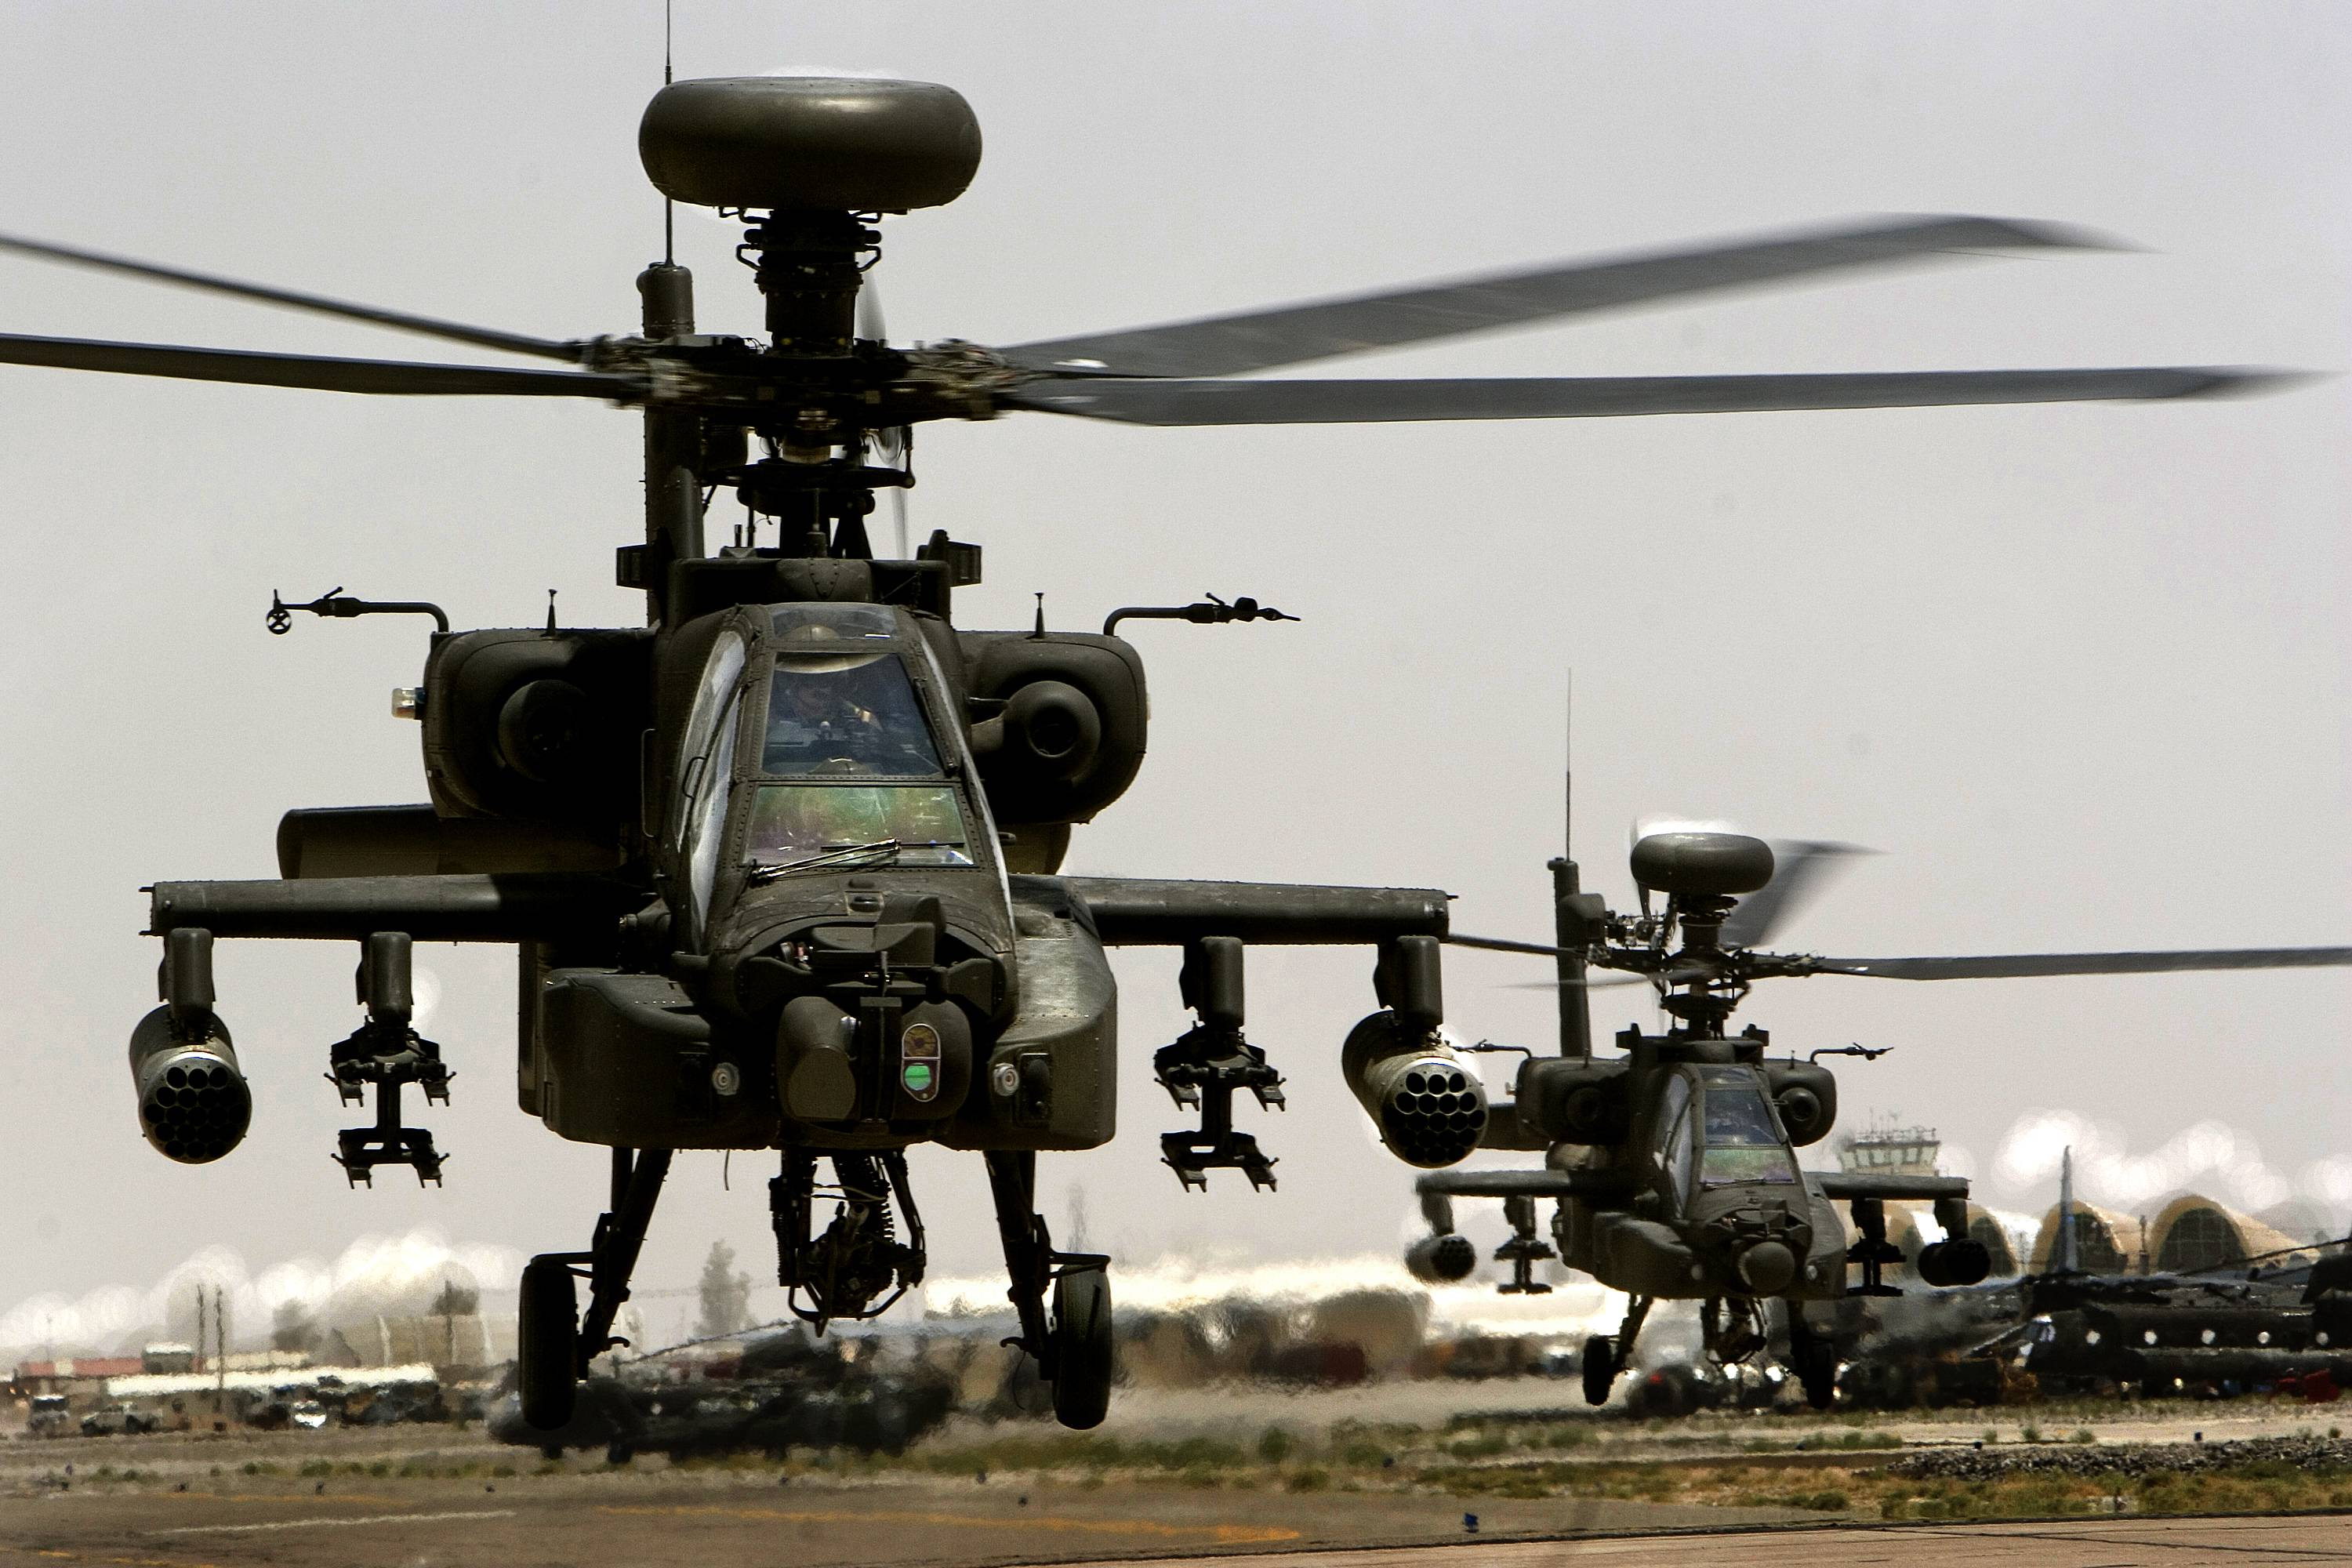 apache helicopters vehicles ah 64 apache wallpaper background Car 3000x2000